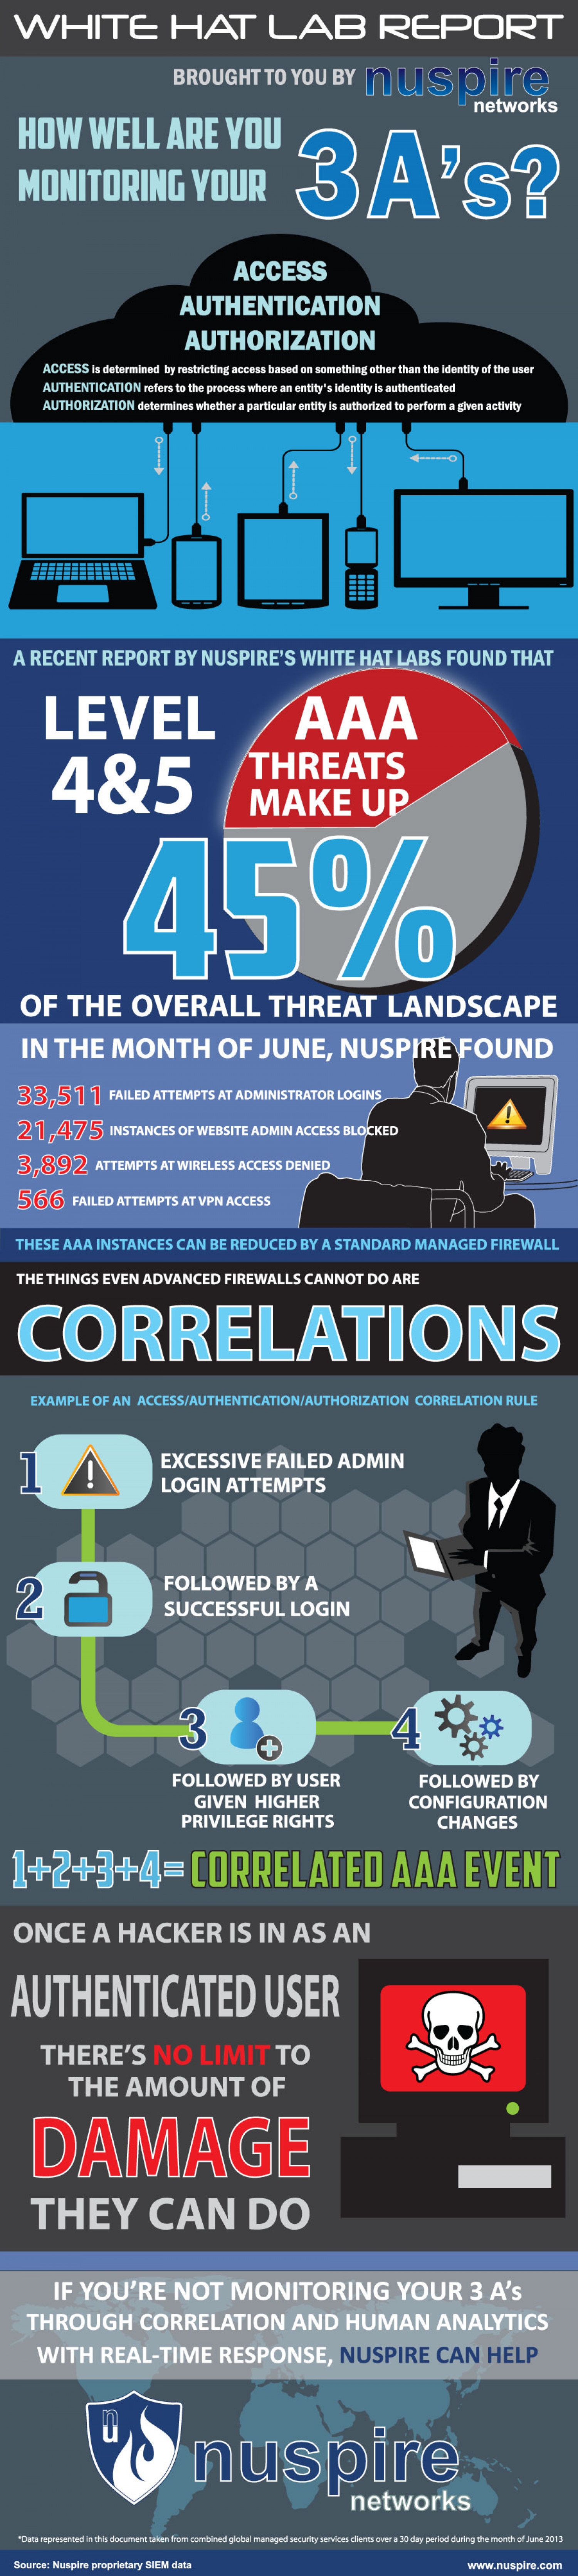 How Well Are You Monitoring Your 3A's? Infographic